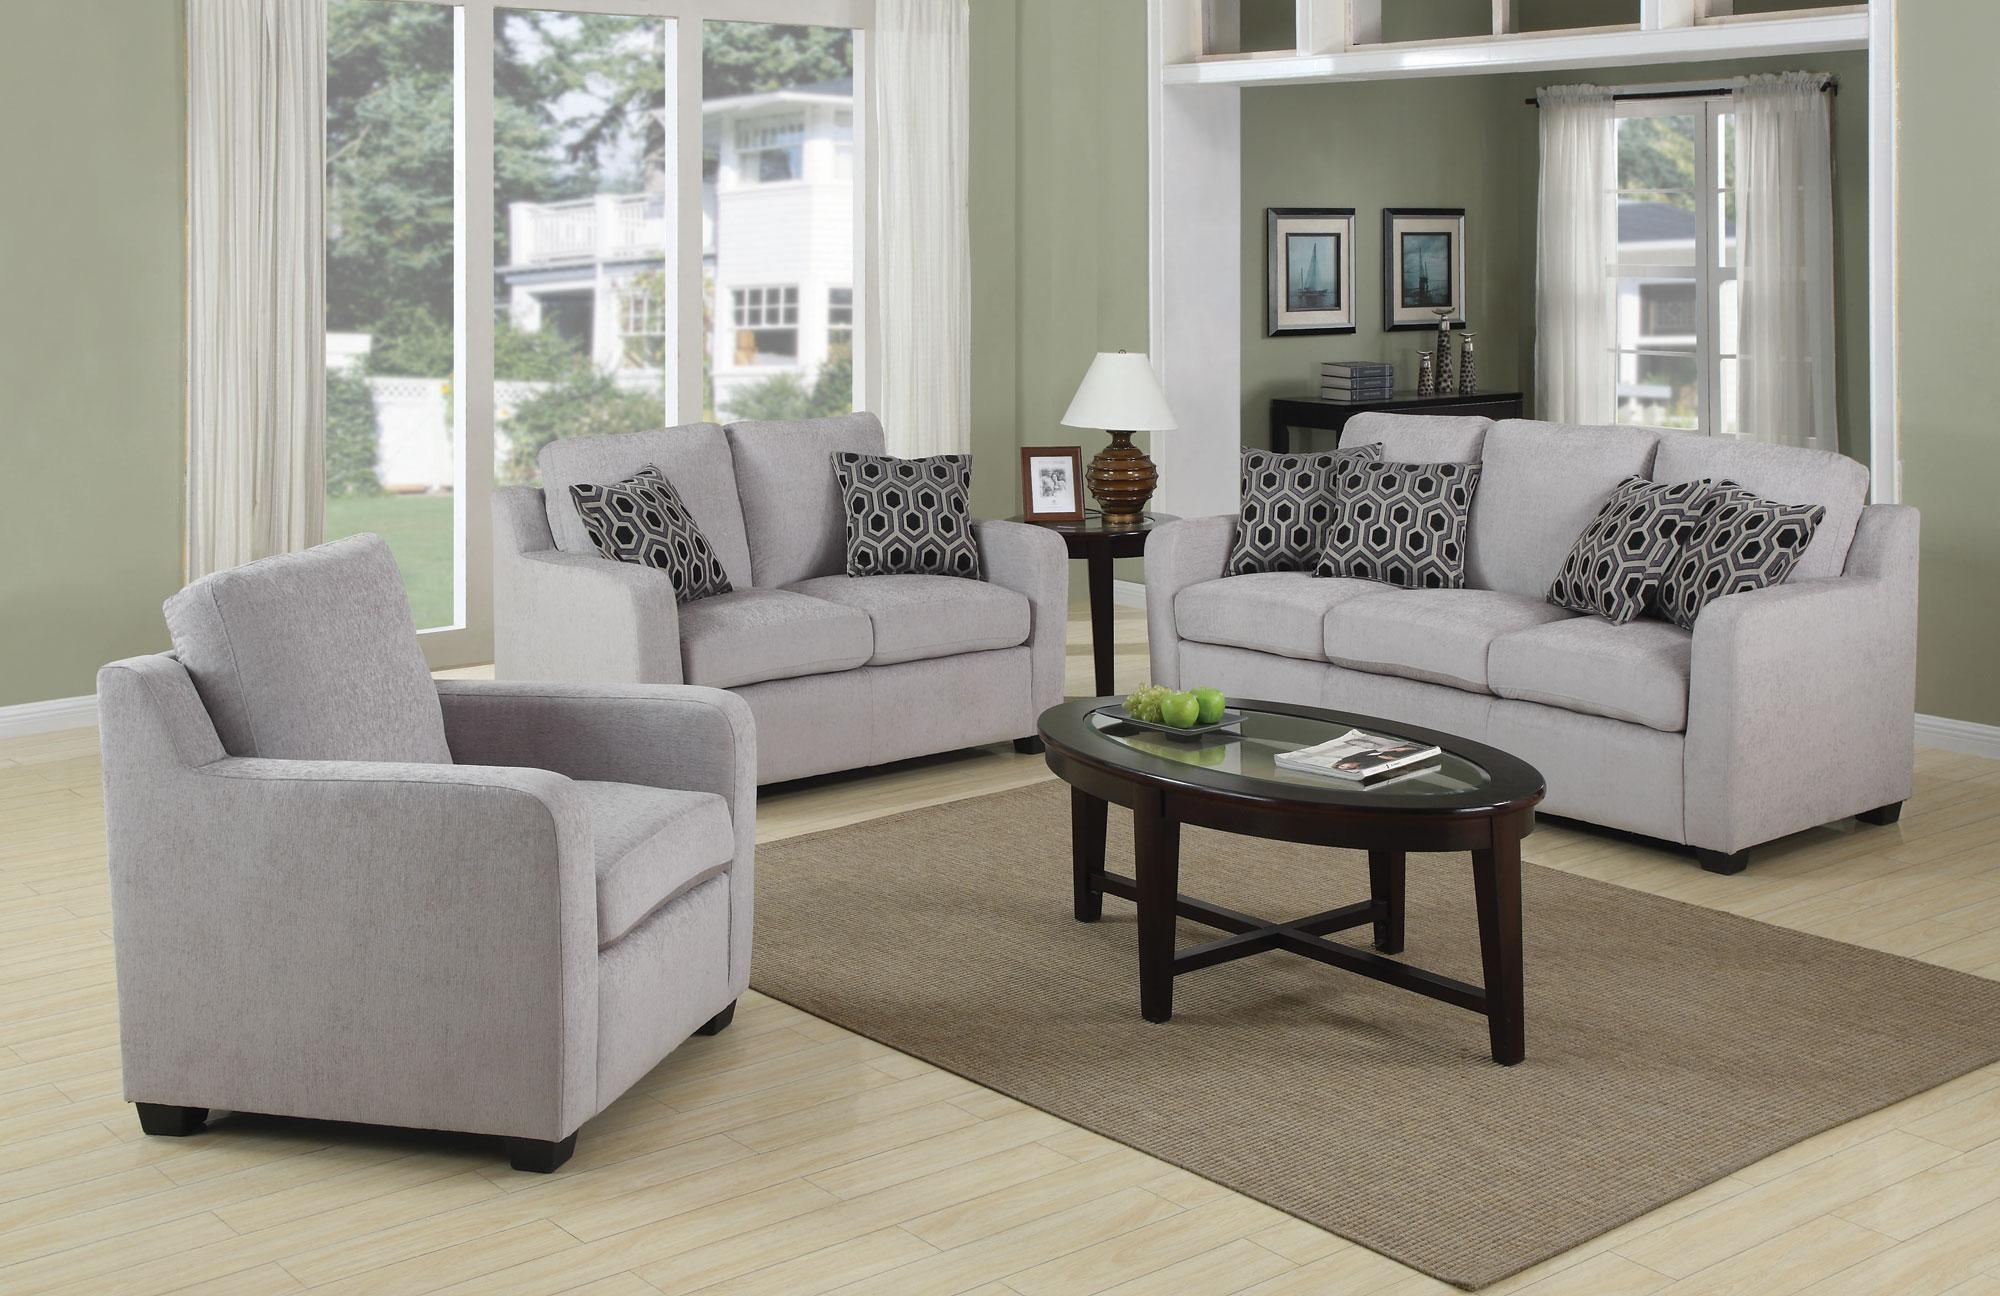 Fresh Light Grey Couch What Color Walls 68 With Additional Colour Pertaining To Sofas With Lights (Image 12 of 21)